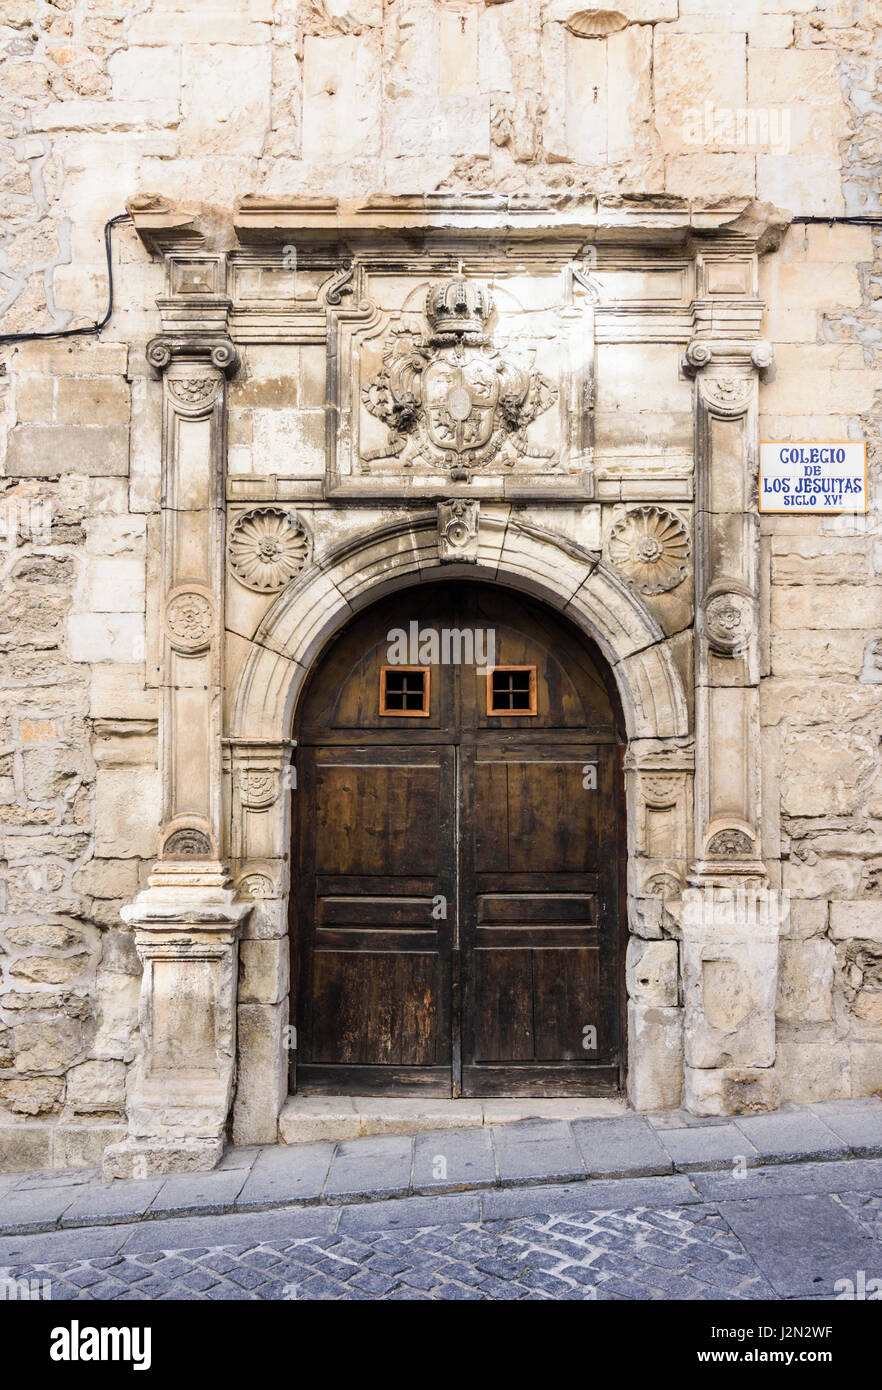 Wooden double doors and Jesuit coat of arms on the old Colegio de los Jesuitas, a historic building in the old medieval - Stock Image